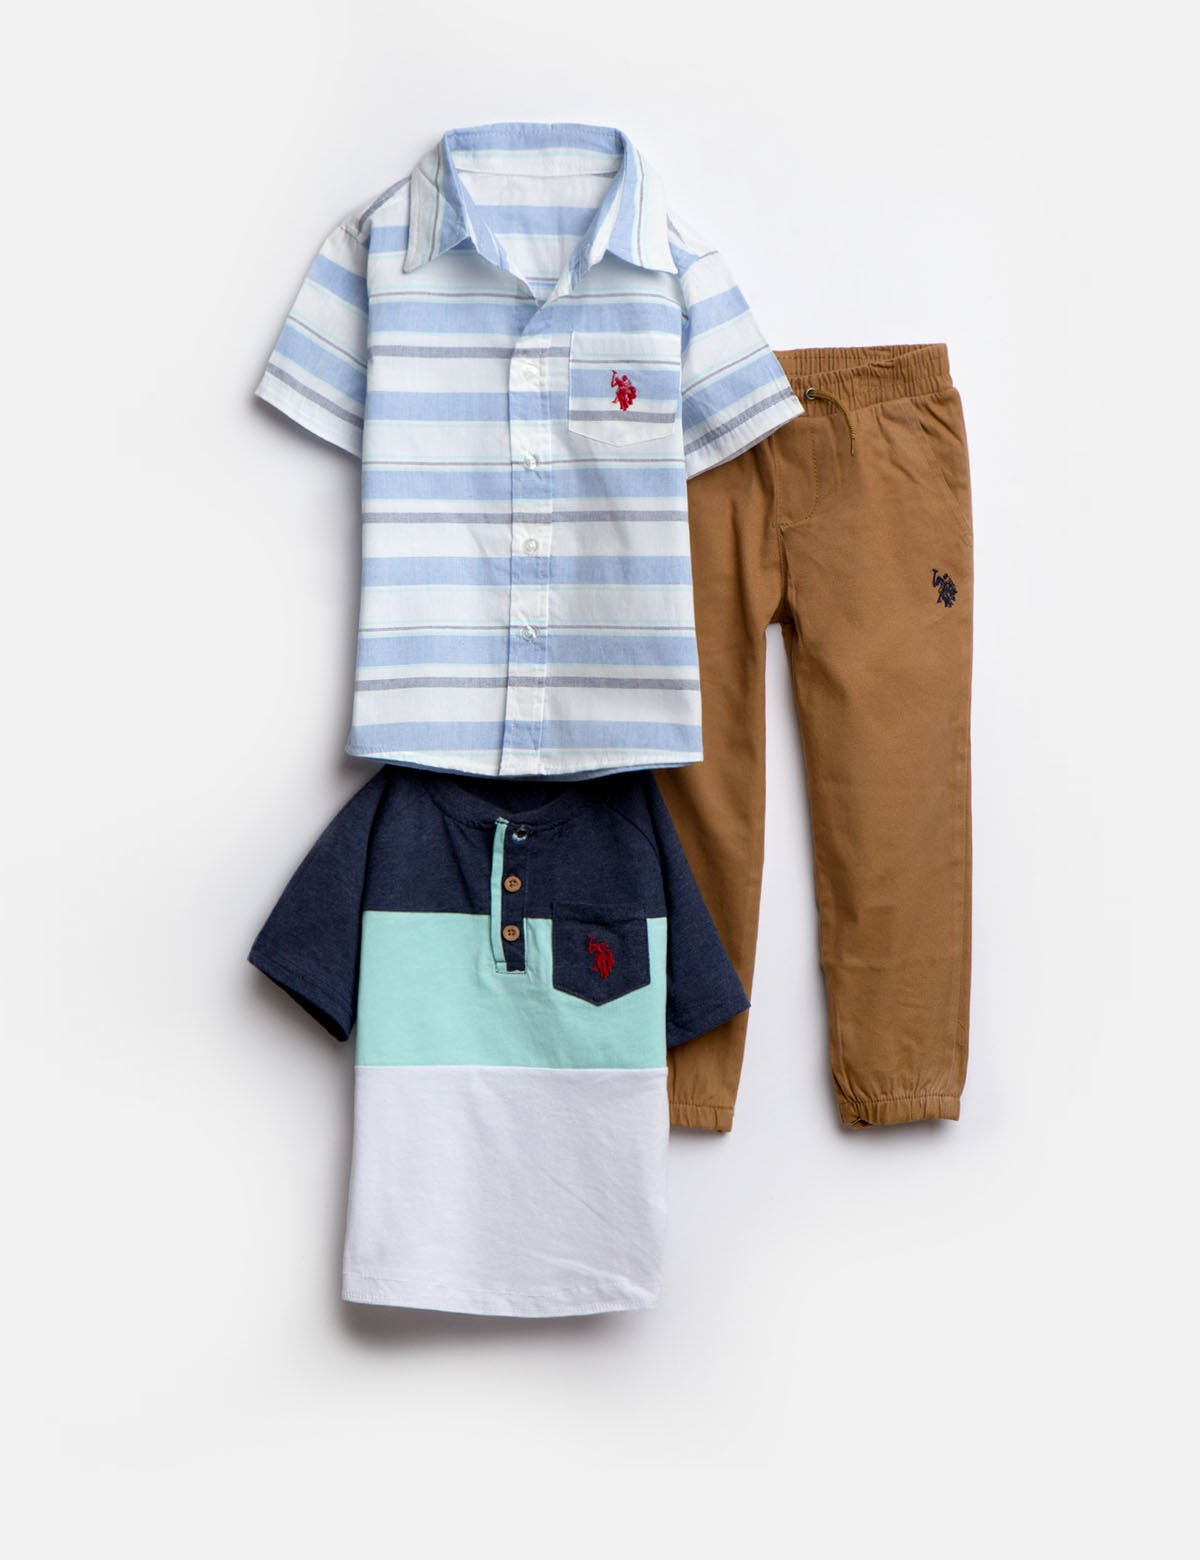 TODDLER BOYS 3 PIECE SET: SHIRT, TEE & JOGGERS